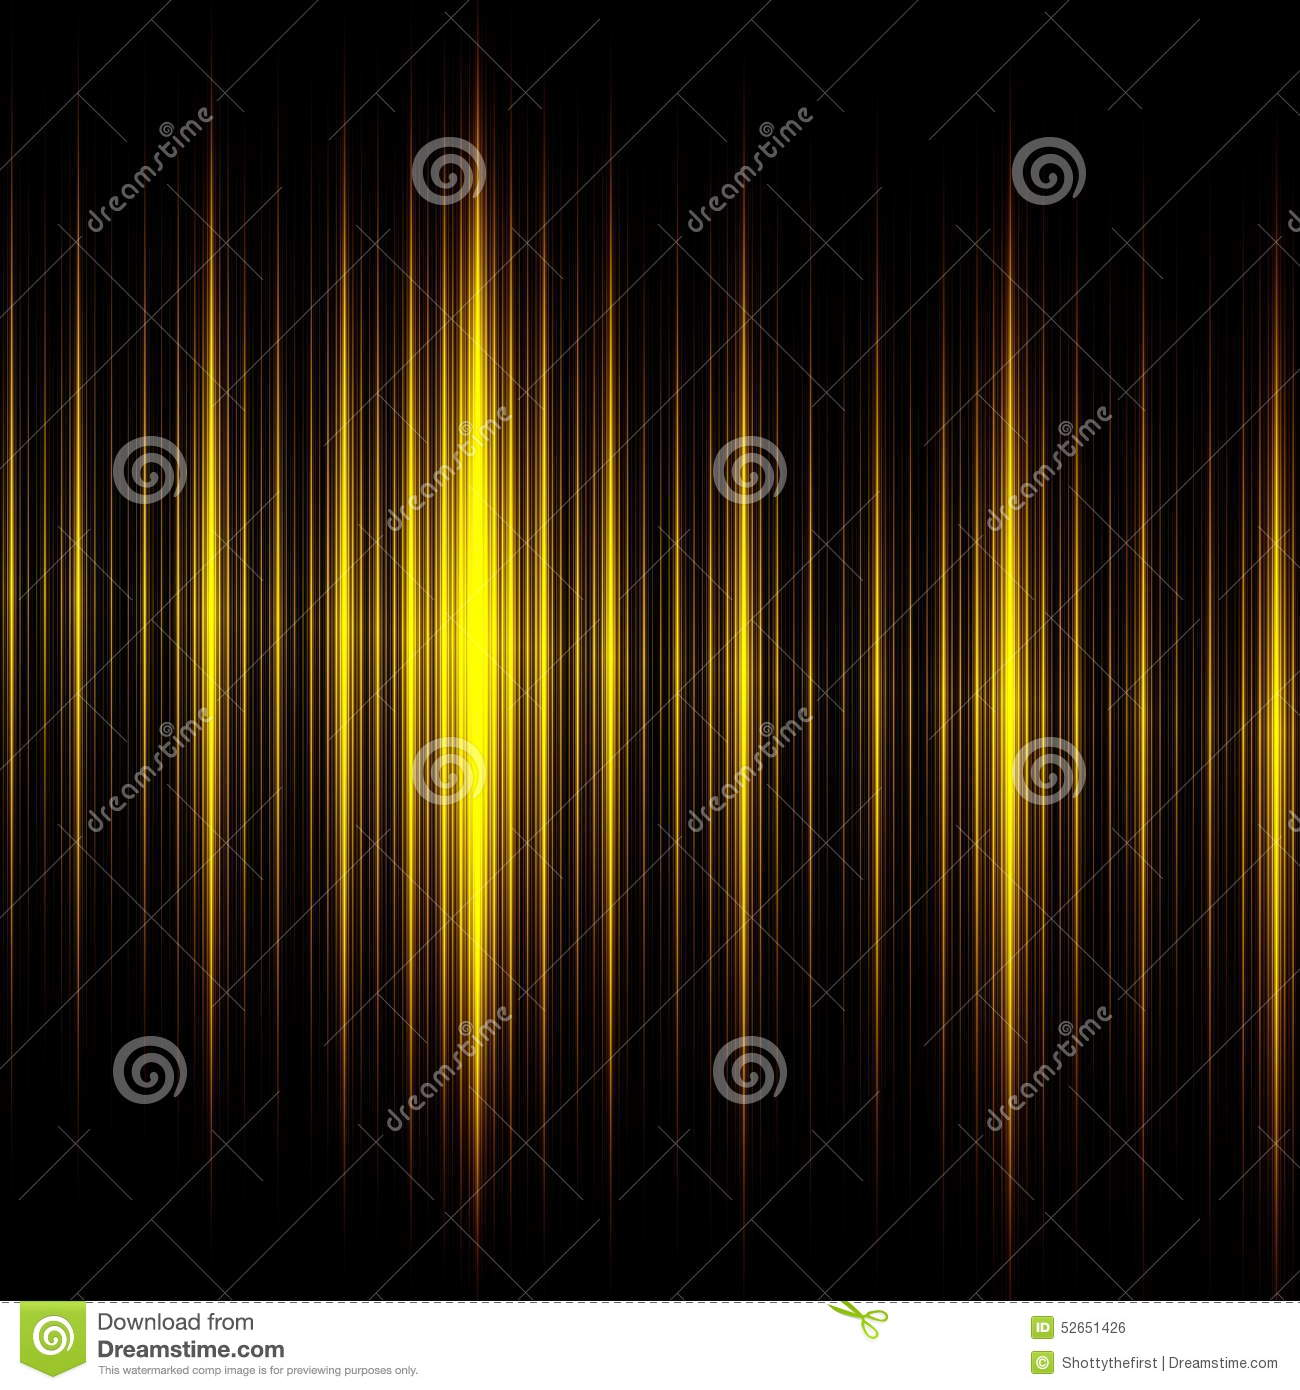 Elegant Black Yellow Lines Background. Beautiful Abstract Design. Creative Modern Technology Illustration. Dark Glowing Texture.